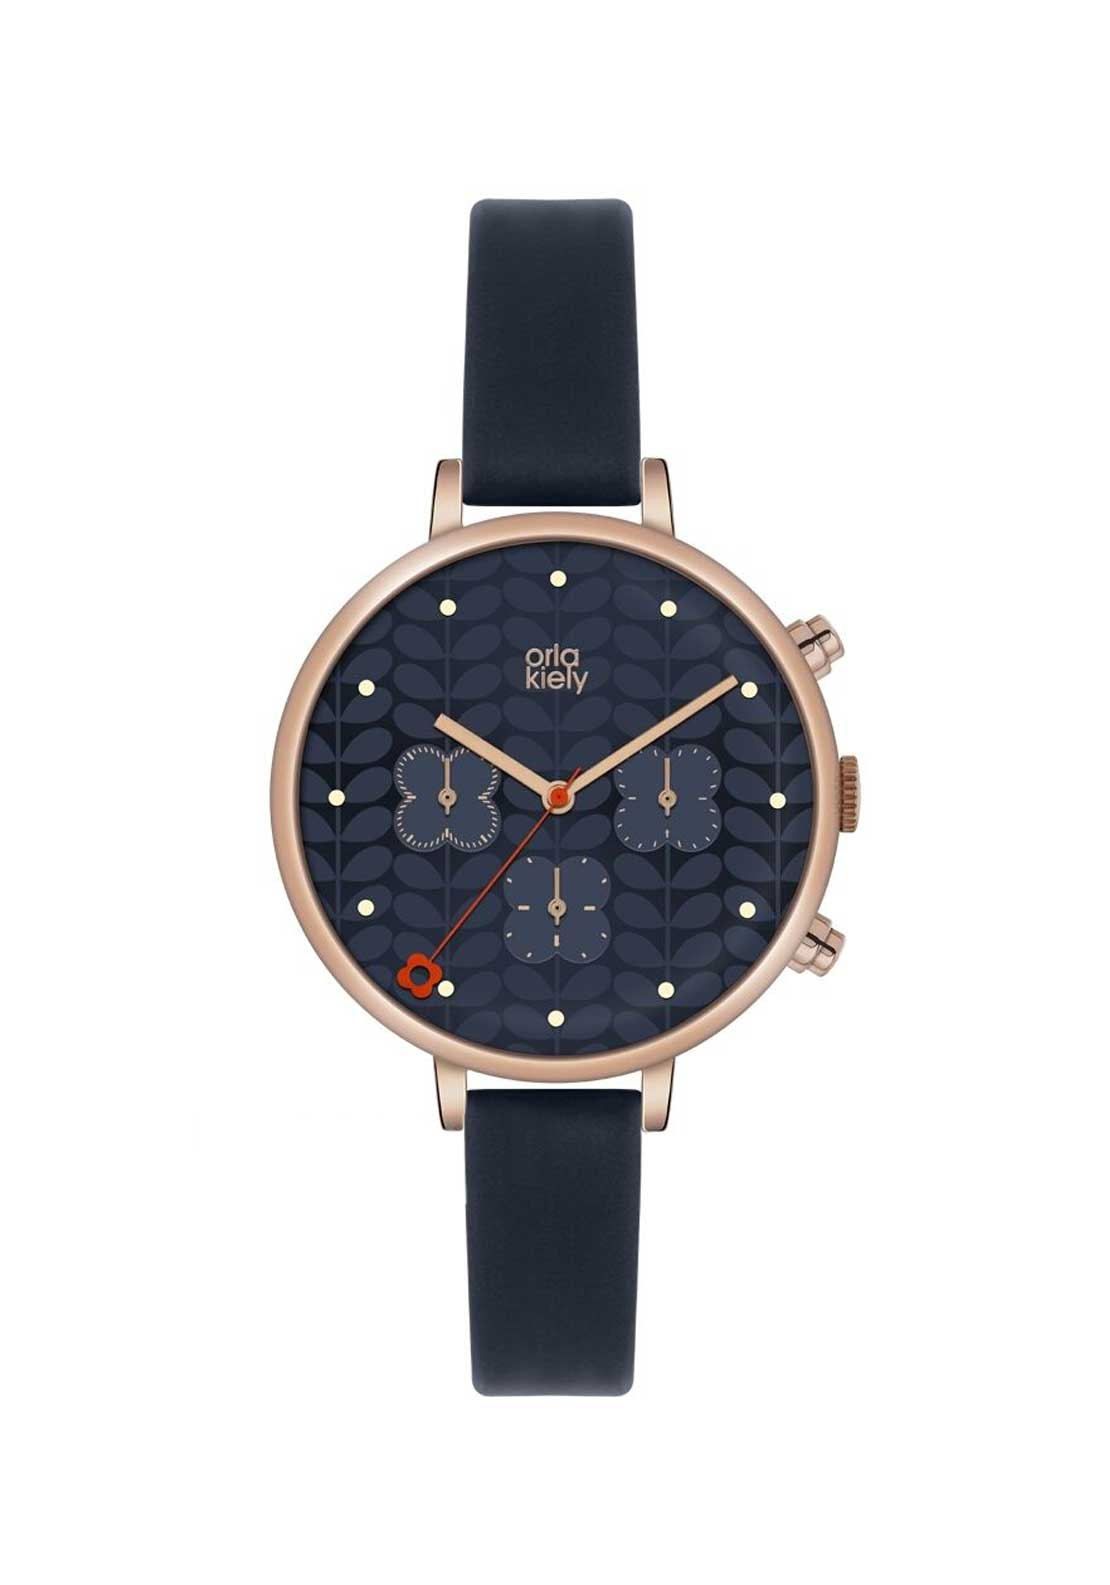 Orla Kiely Ladies Ivy Chronograph Watch with Navy Leather Strap, Rose Gold